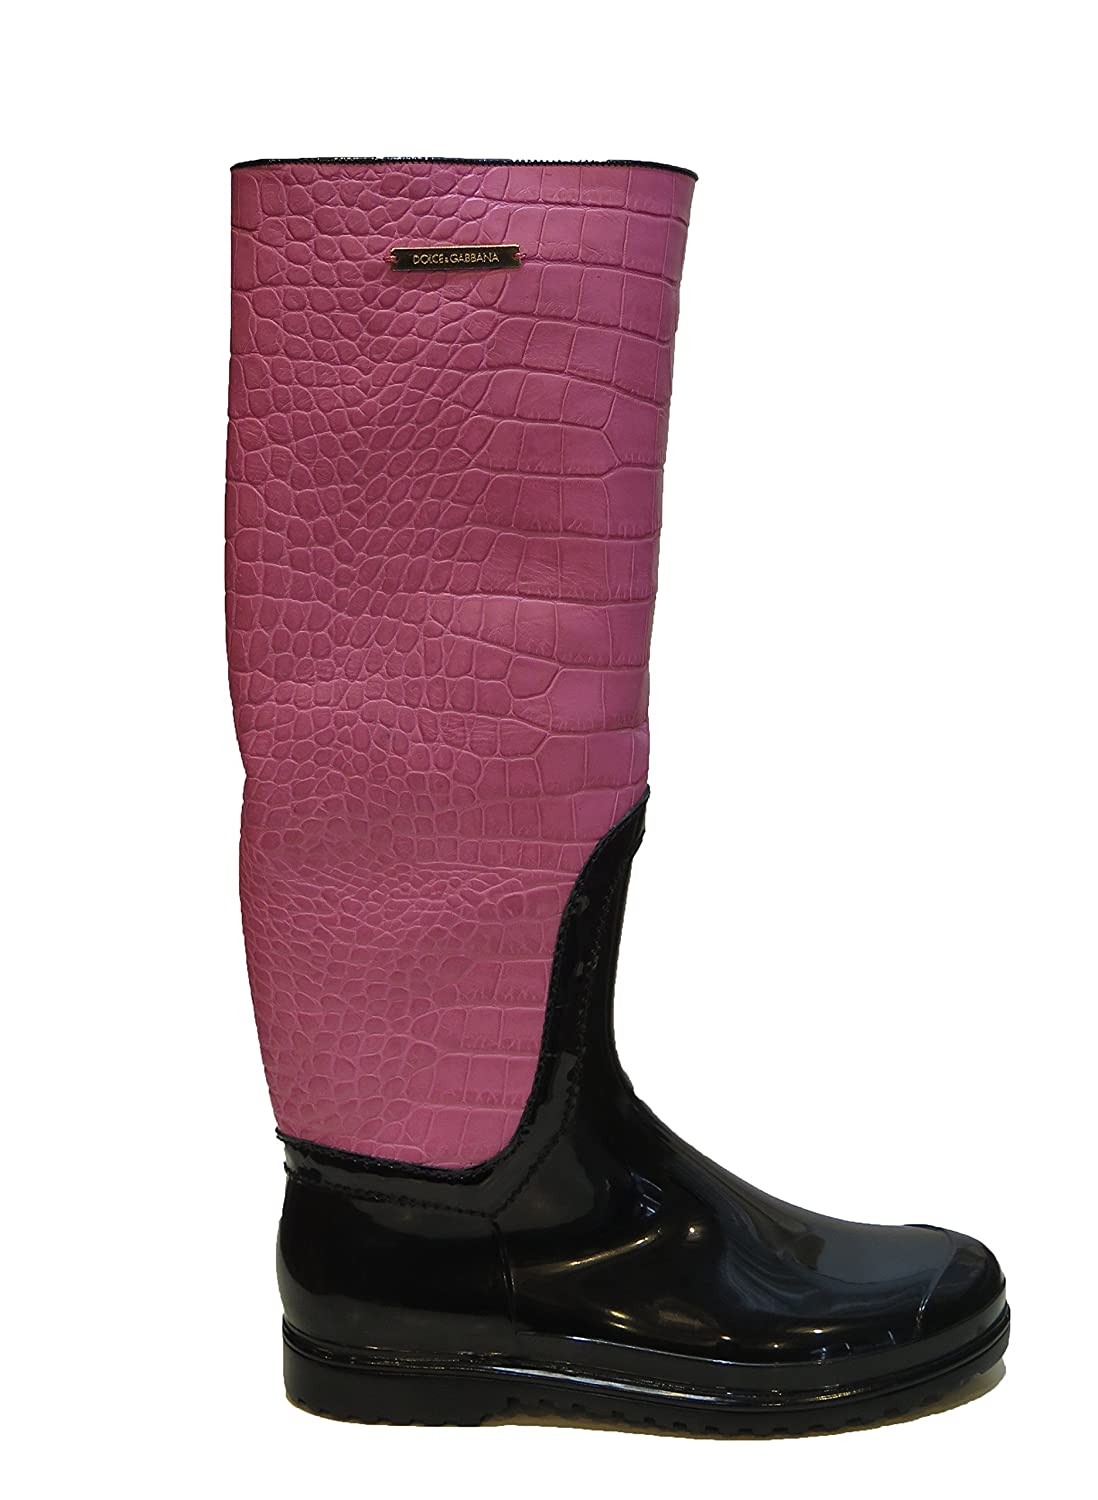 Dolce & Gabbana Italy Woman's Pink Crocodile Leather Rubber Rainboots Boots B01BE7FZL6 7 B(M) US